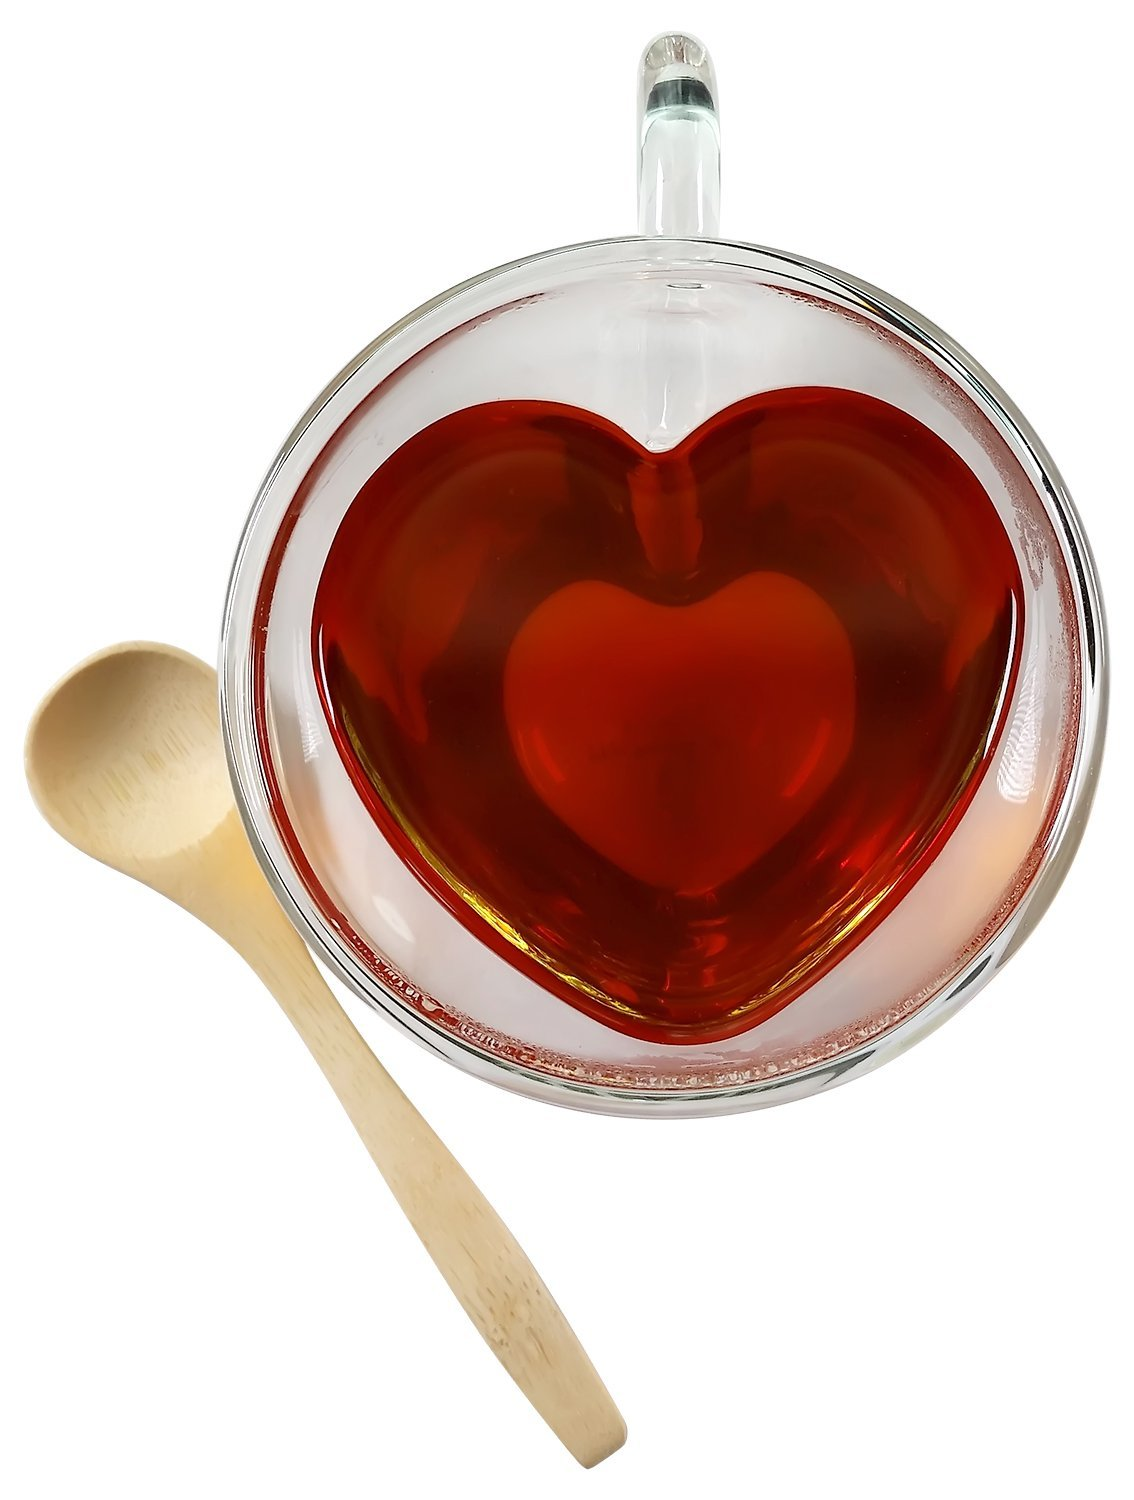 Tea Cup Heart Shaped Double Wall Insulated Clear Glass Tea and Coffee Cup 8.5 Ounces with Bamboo Teaspoon by Princeton Wares (1)